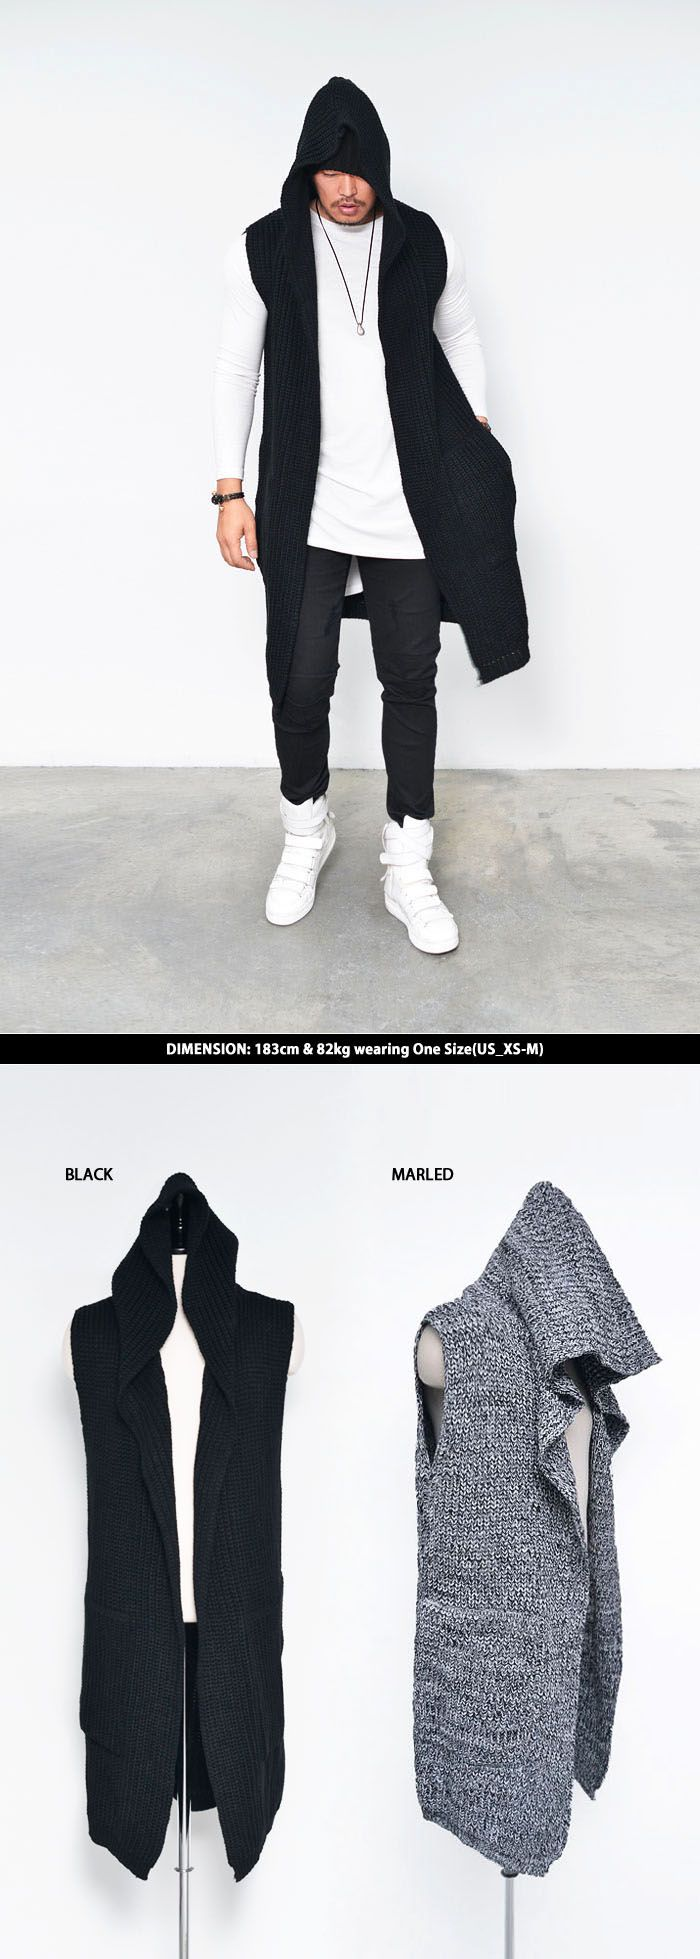 a641daf9ea Tops    Hoodies    Chunky Knit Hooded Long Sleeveless Cardigan-Vest 109 -  Mens Fashion Clothing For An Attractive Guy Look